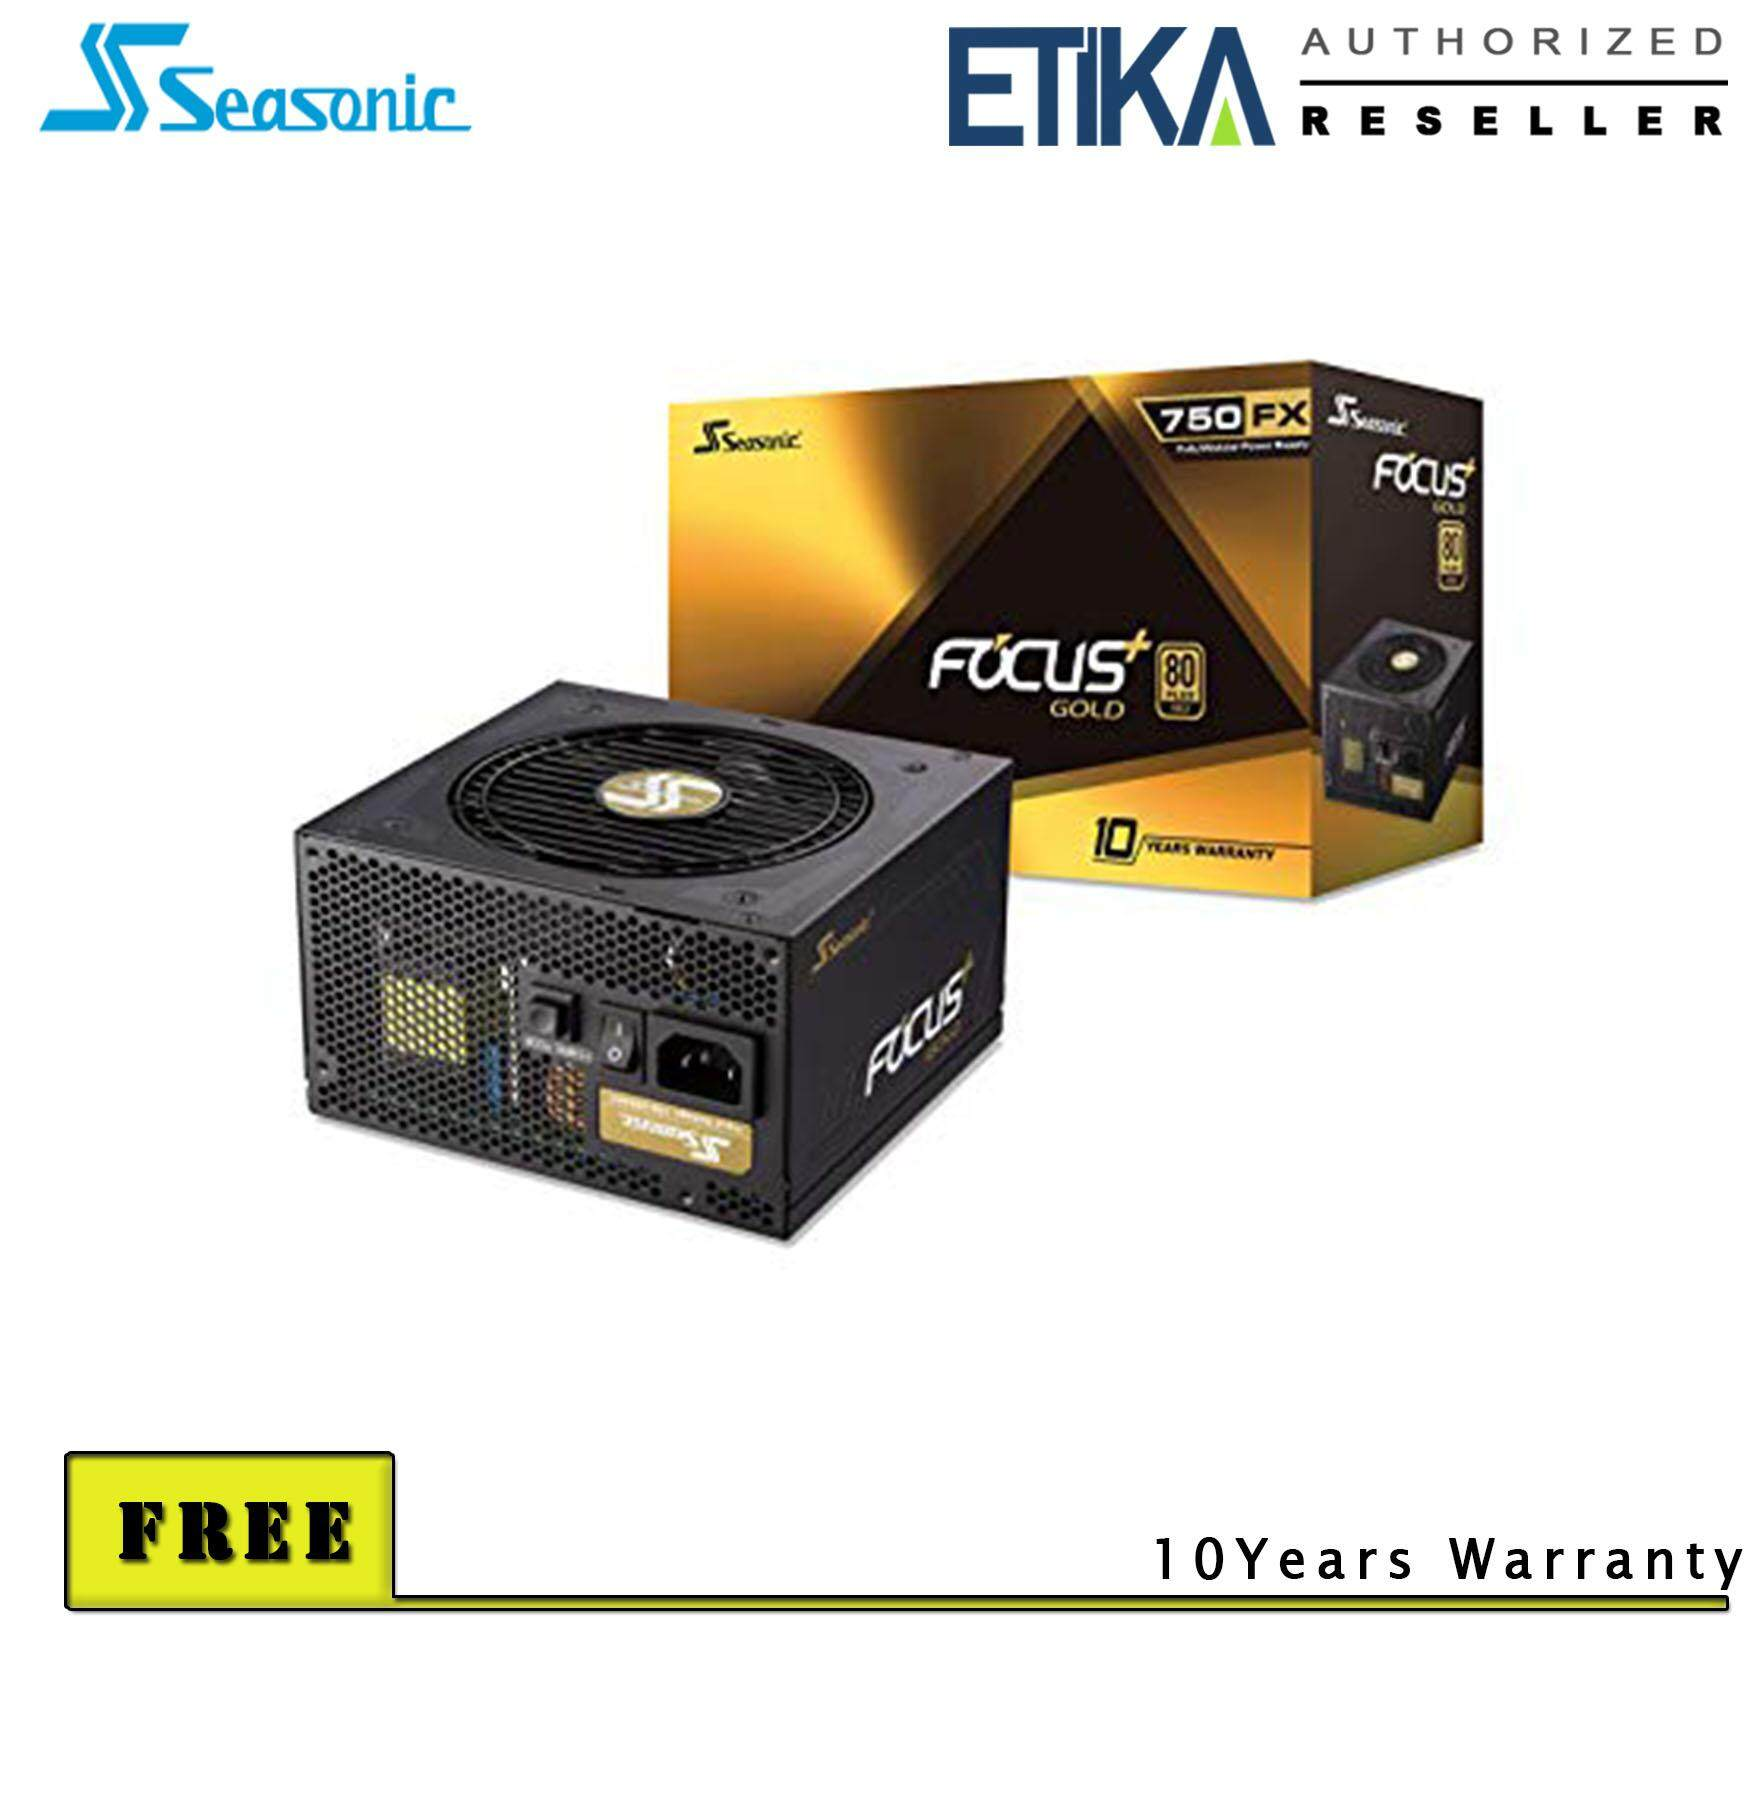 Seasonic Fx-750 Gold 750w 80+ Gold Full Modular Power Supply (10 Years Warranty) By Etika Komputer S/b.